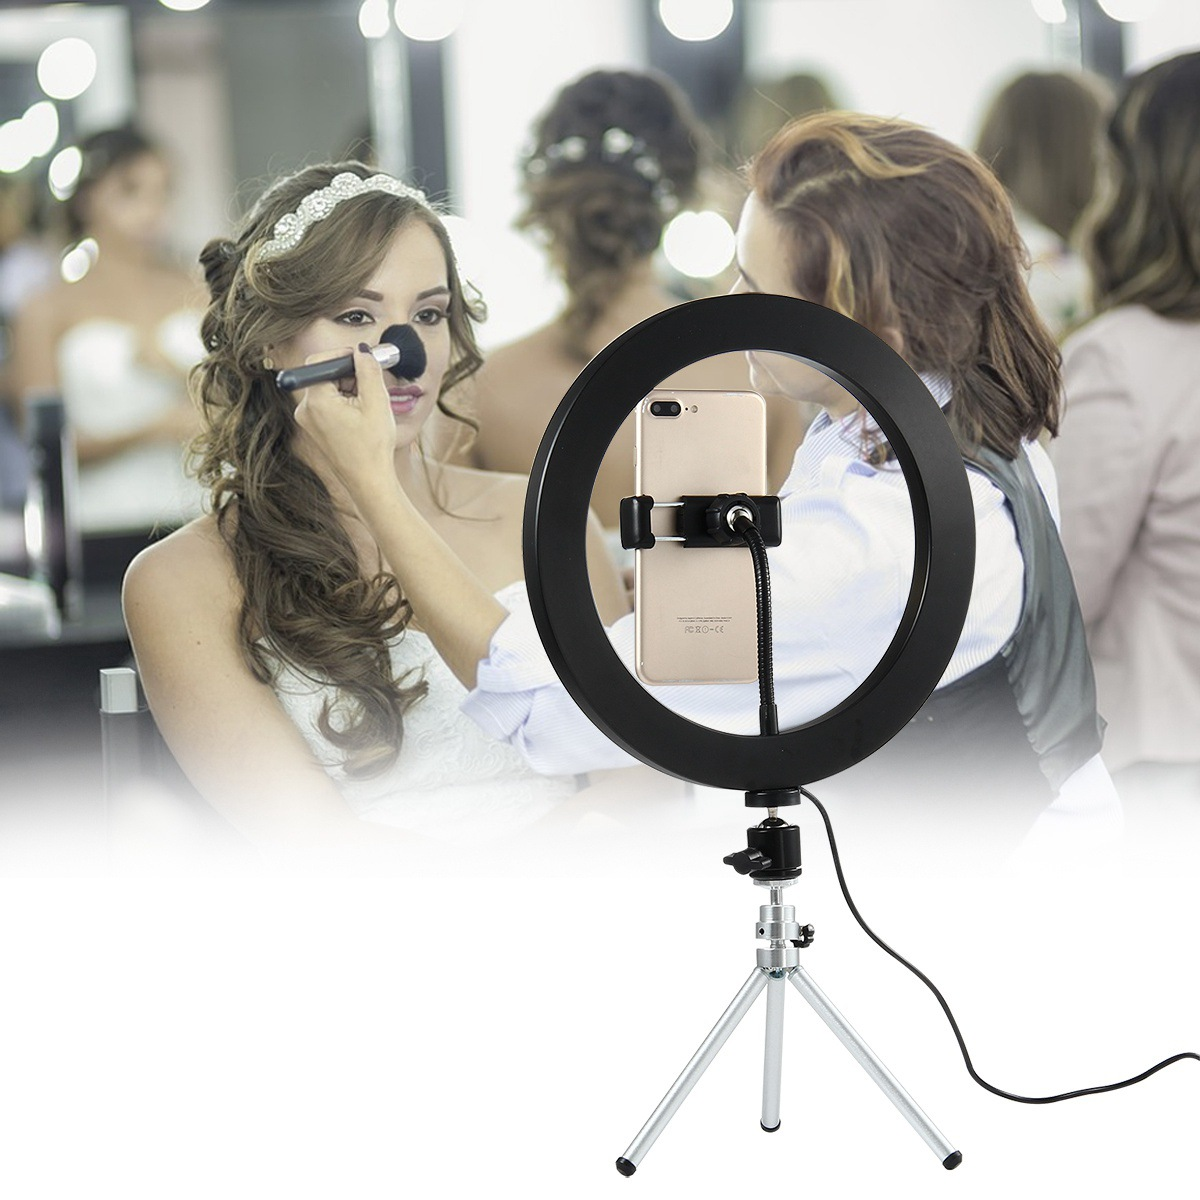 Phone Holder With Bright Light For Live Show Shooting Video Makeup Bracket Clamp Clip On Desk LED Lamp Smartphone Support Stand